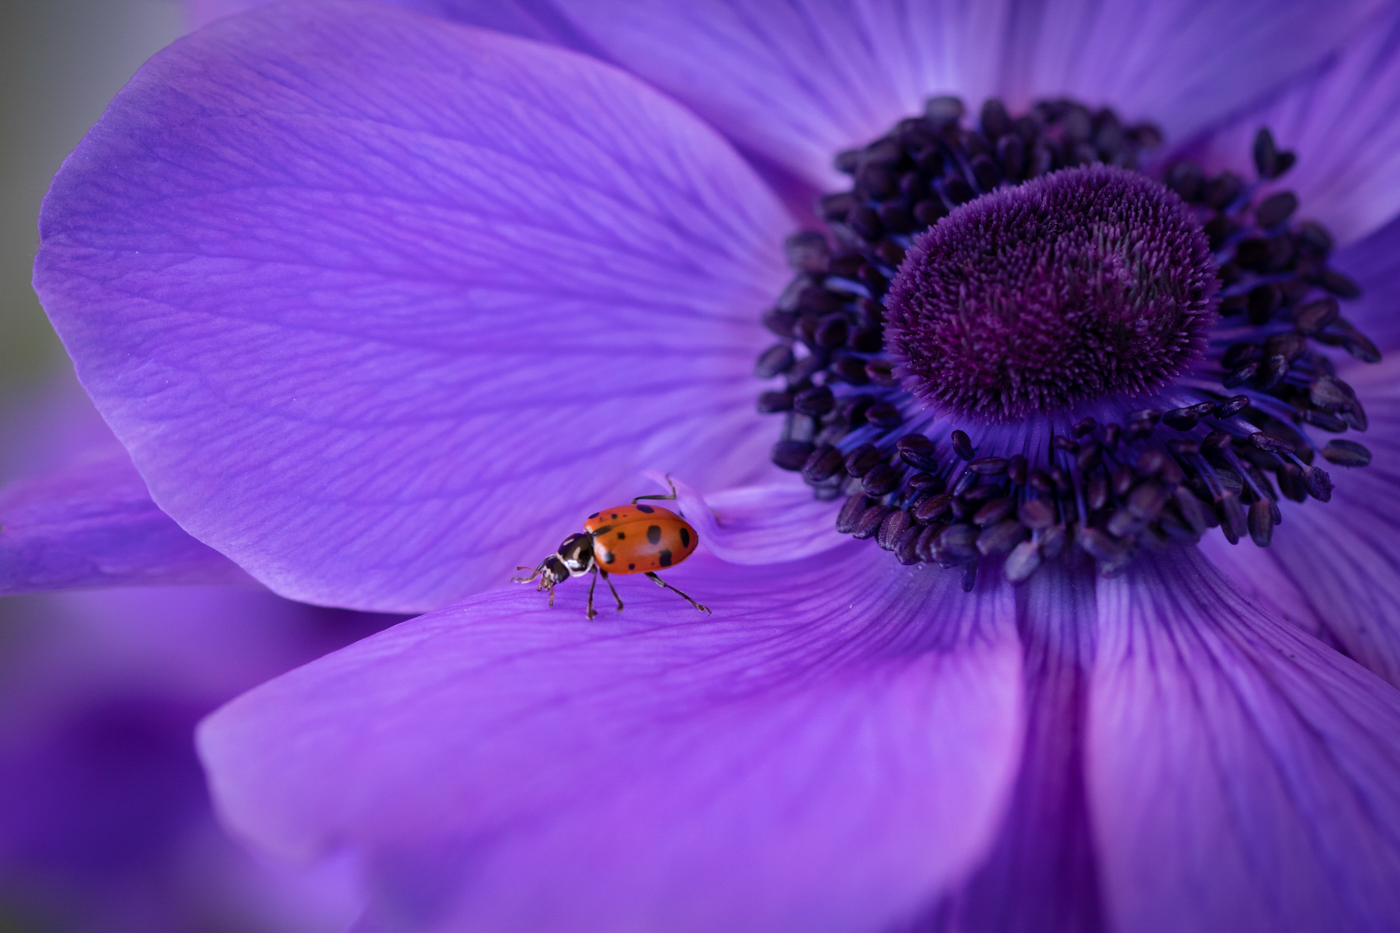 15Assigned_Terry_Miranda_1_Ladybug_loves_purple